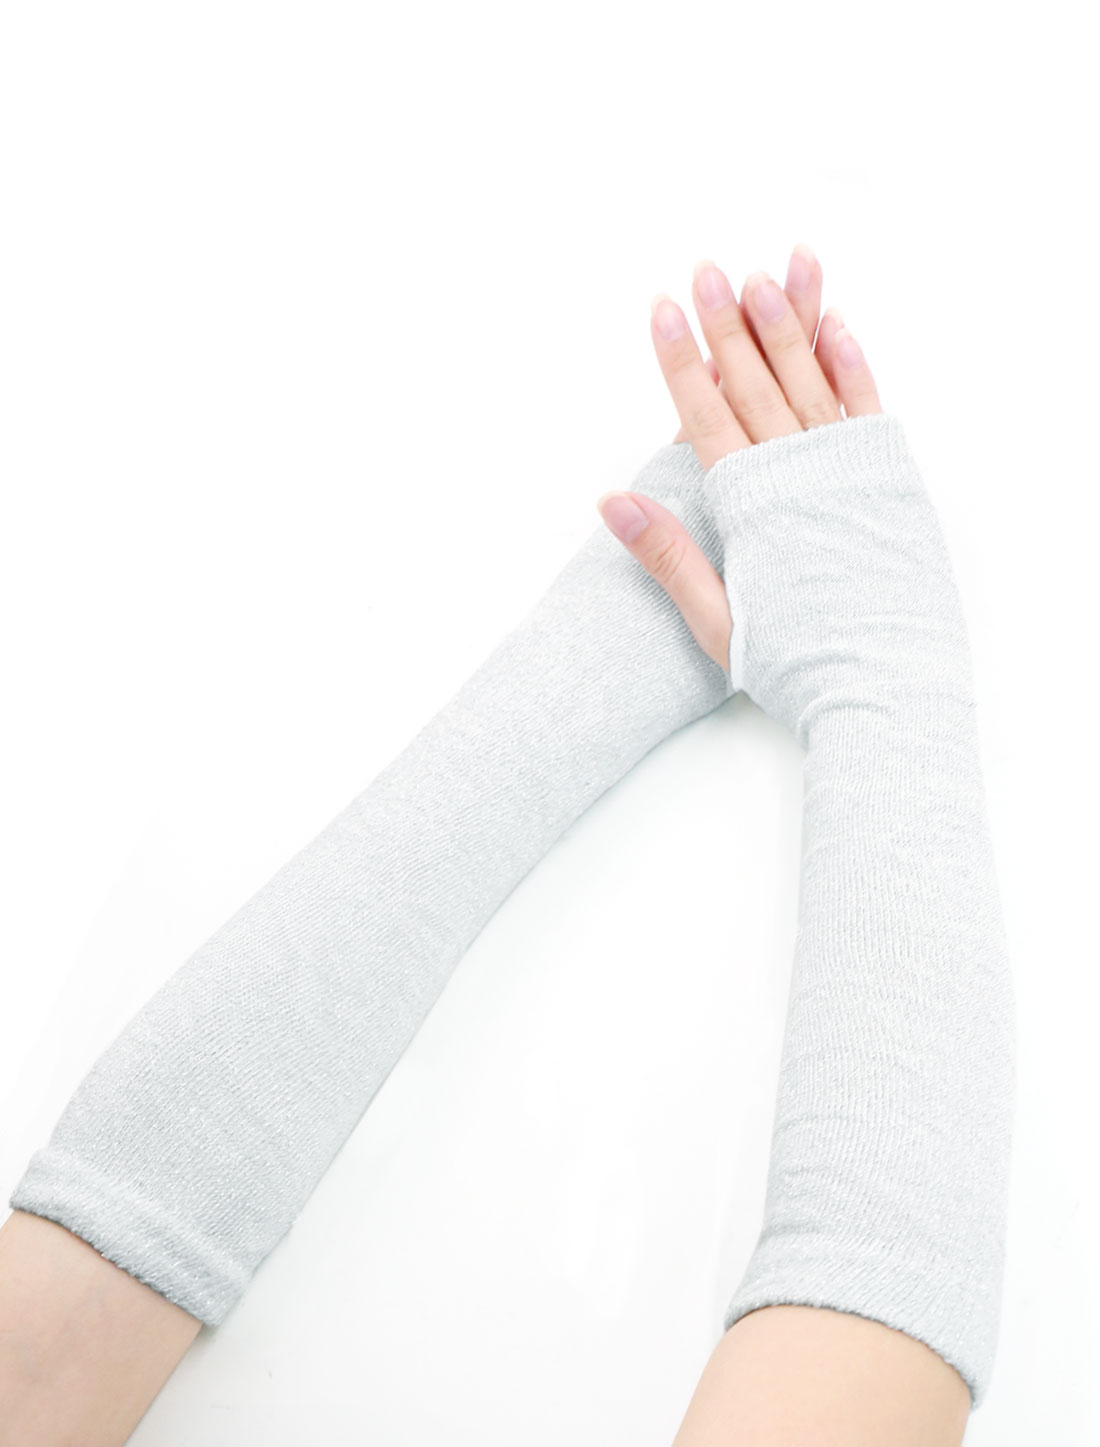 Ladies Thumbhole Ribbed Shiny Knit Arm Warmers Gray Silver